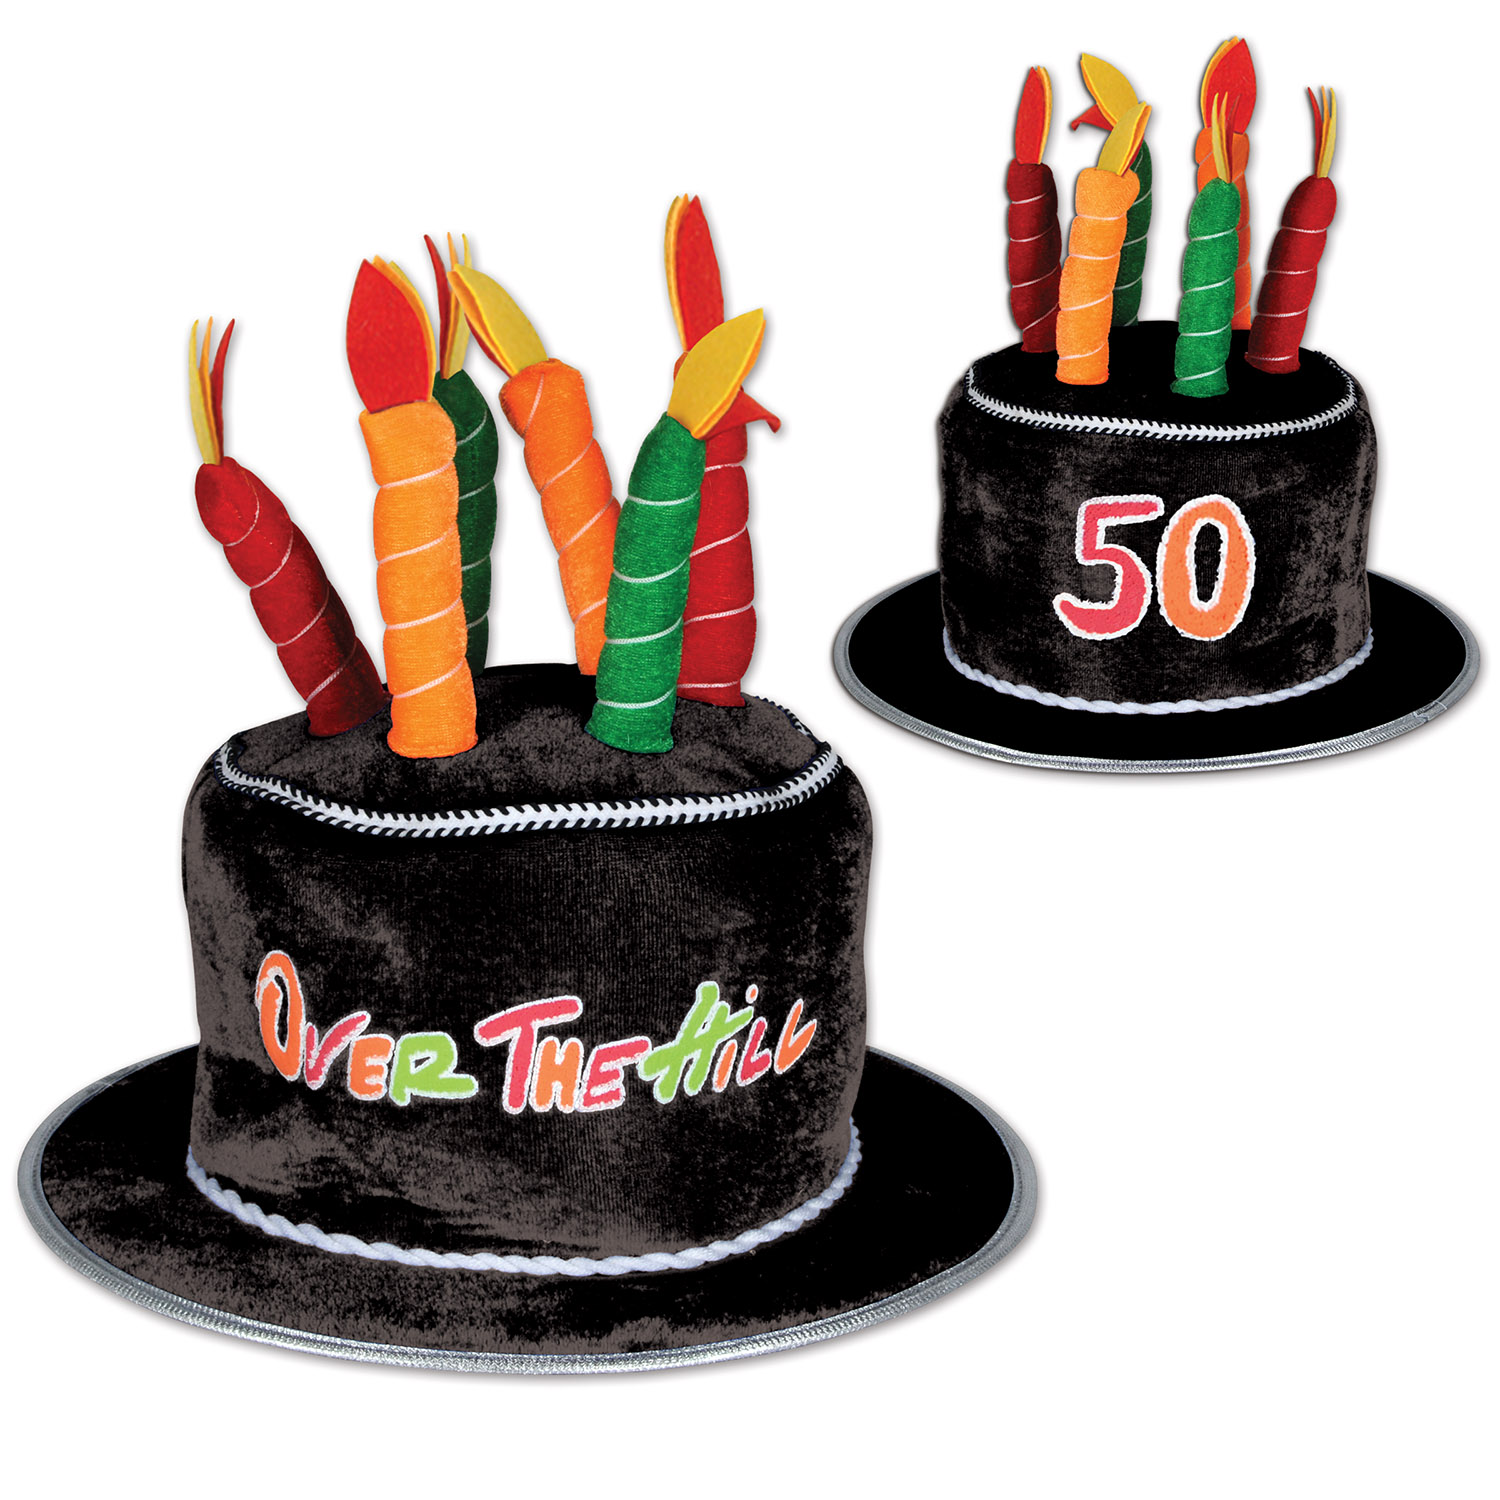 Details About OVER THE HILL 50TH BIRTHDAY NOVELTY TOP HAT PARTY CELEBRATION